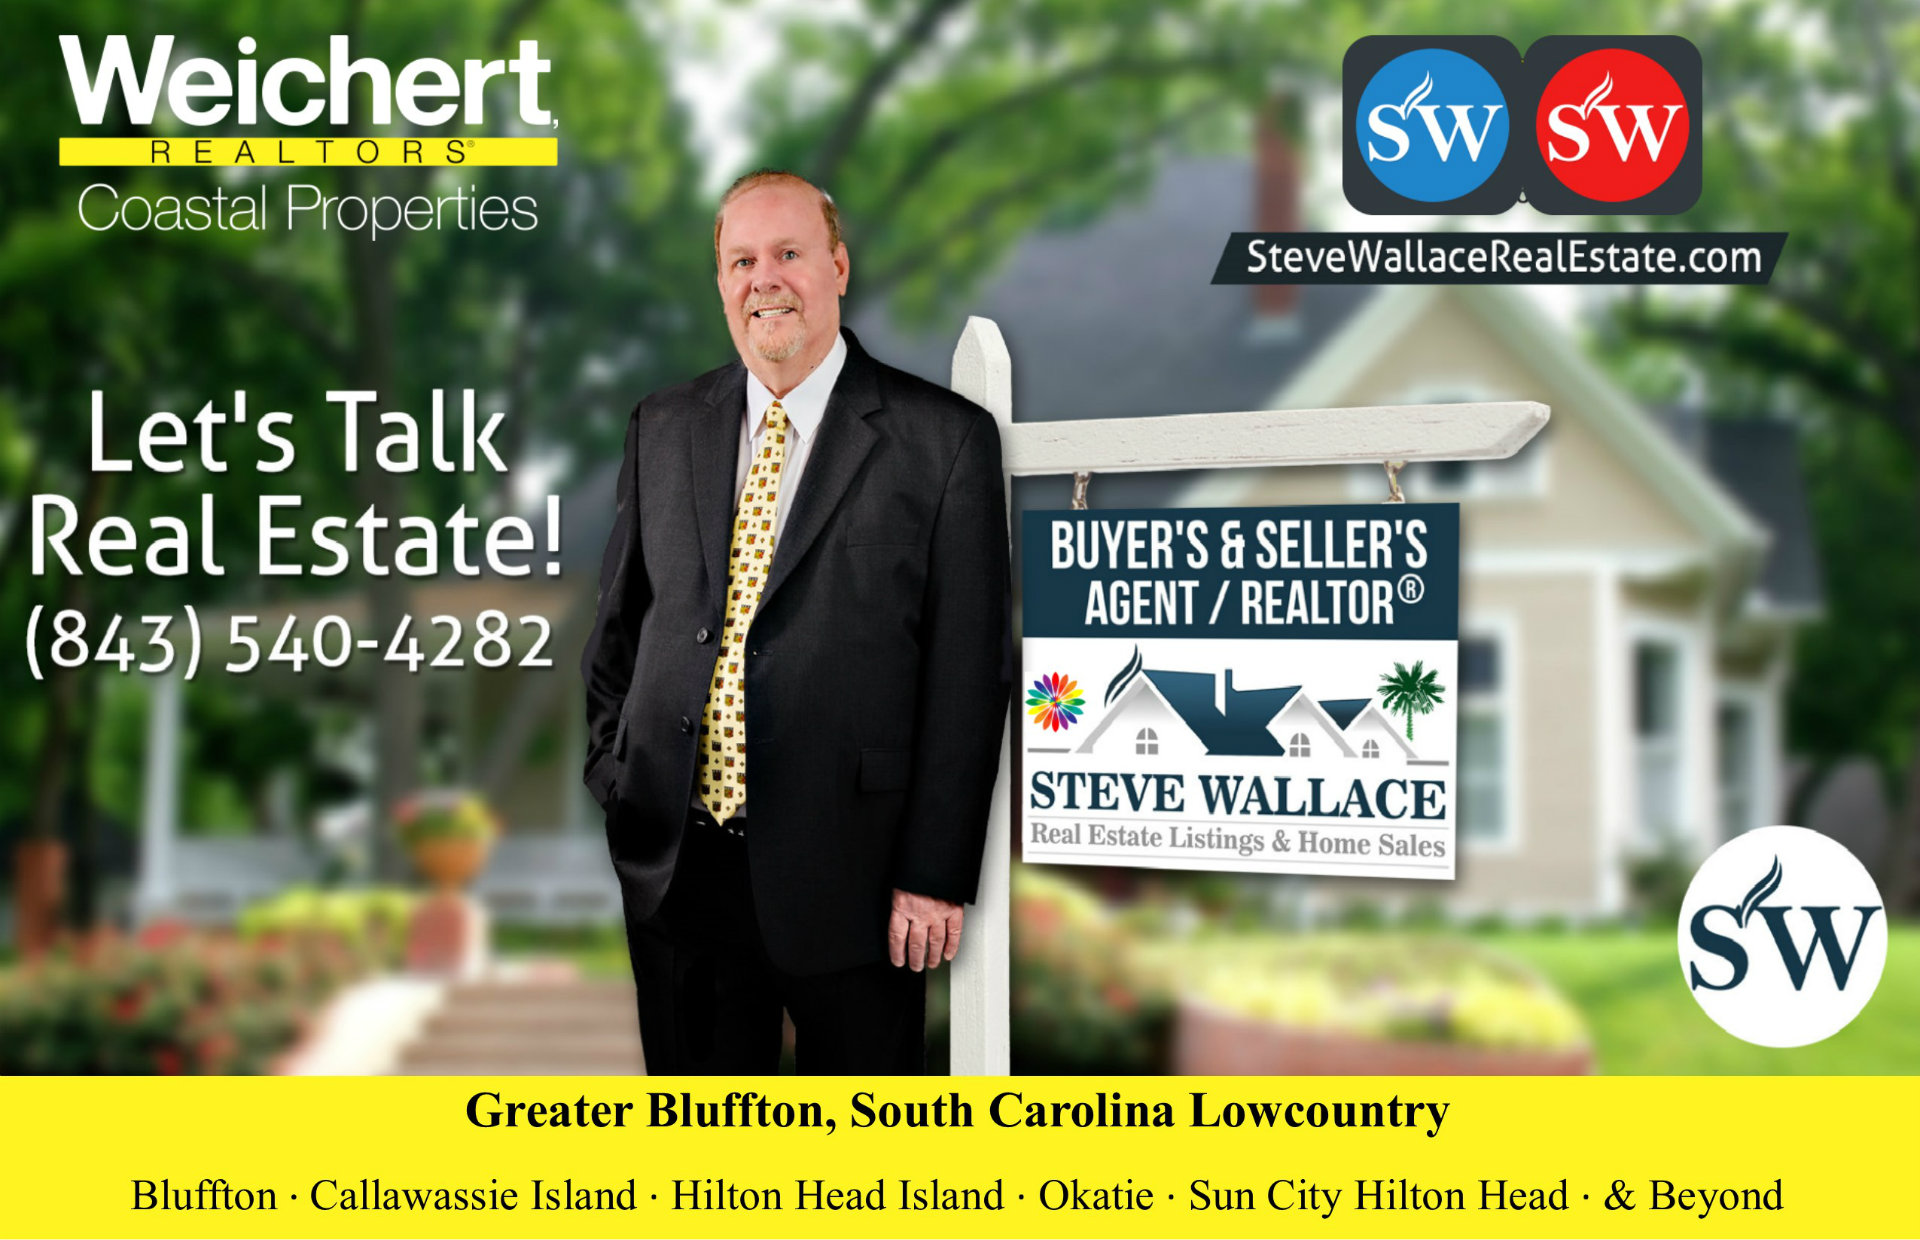 Choose Realtor Steve Wallace Bluffton SC Real Estate Agent